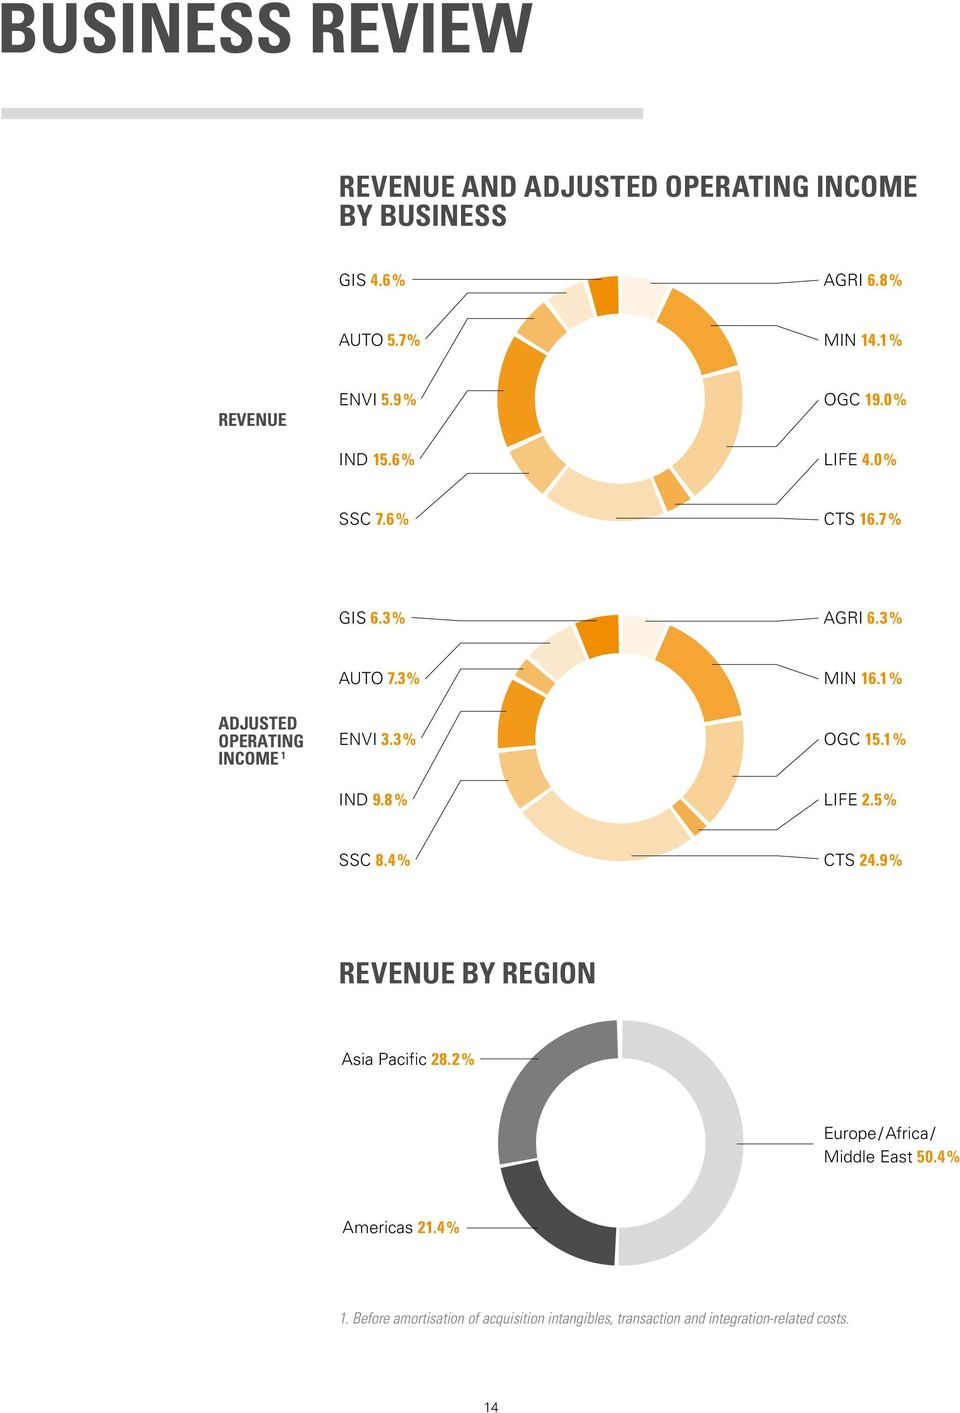 3 % IND 9.8 % MIN 16.1 % OGC 15.1 % LIFE 2.5 % SSC 8.4 % CTS 24.9 % revenue By region Asia Pacific 28.